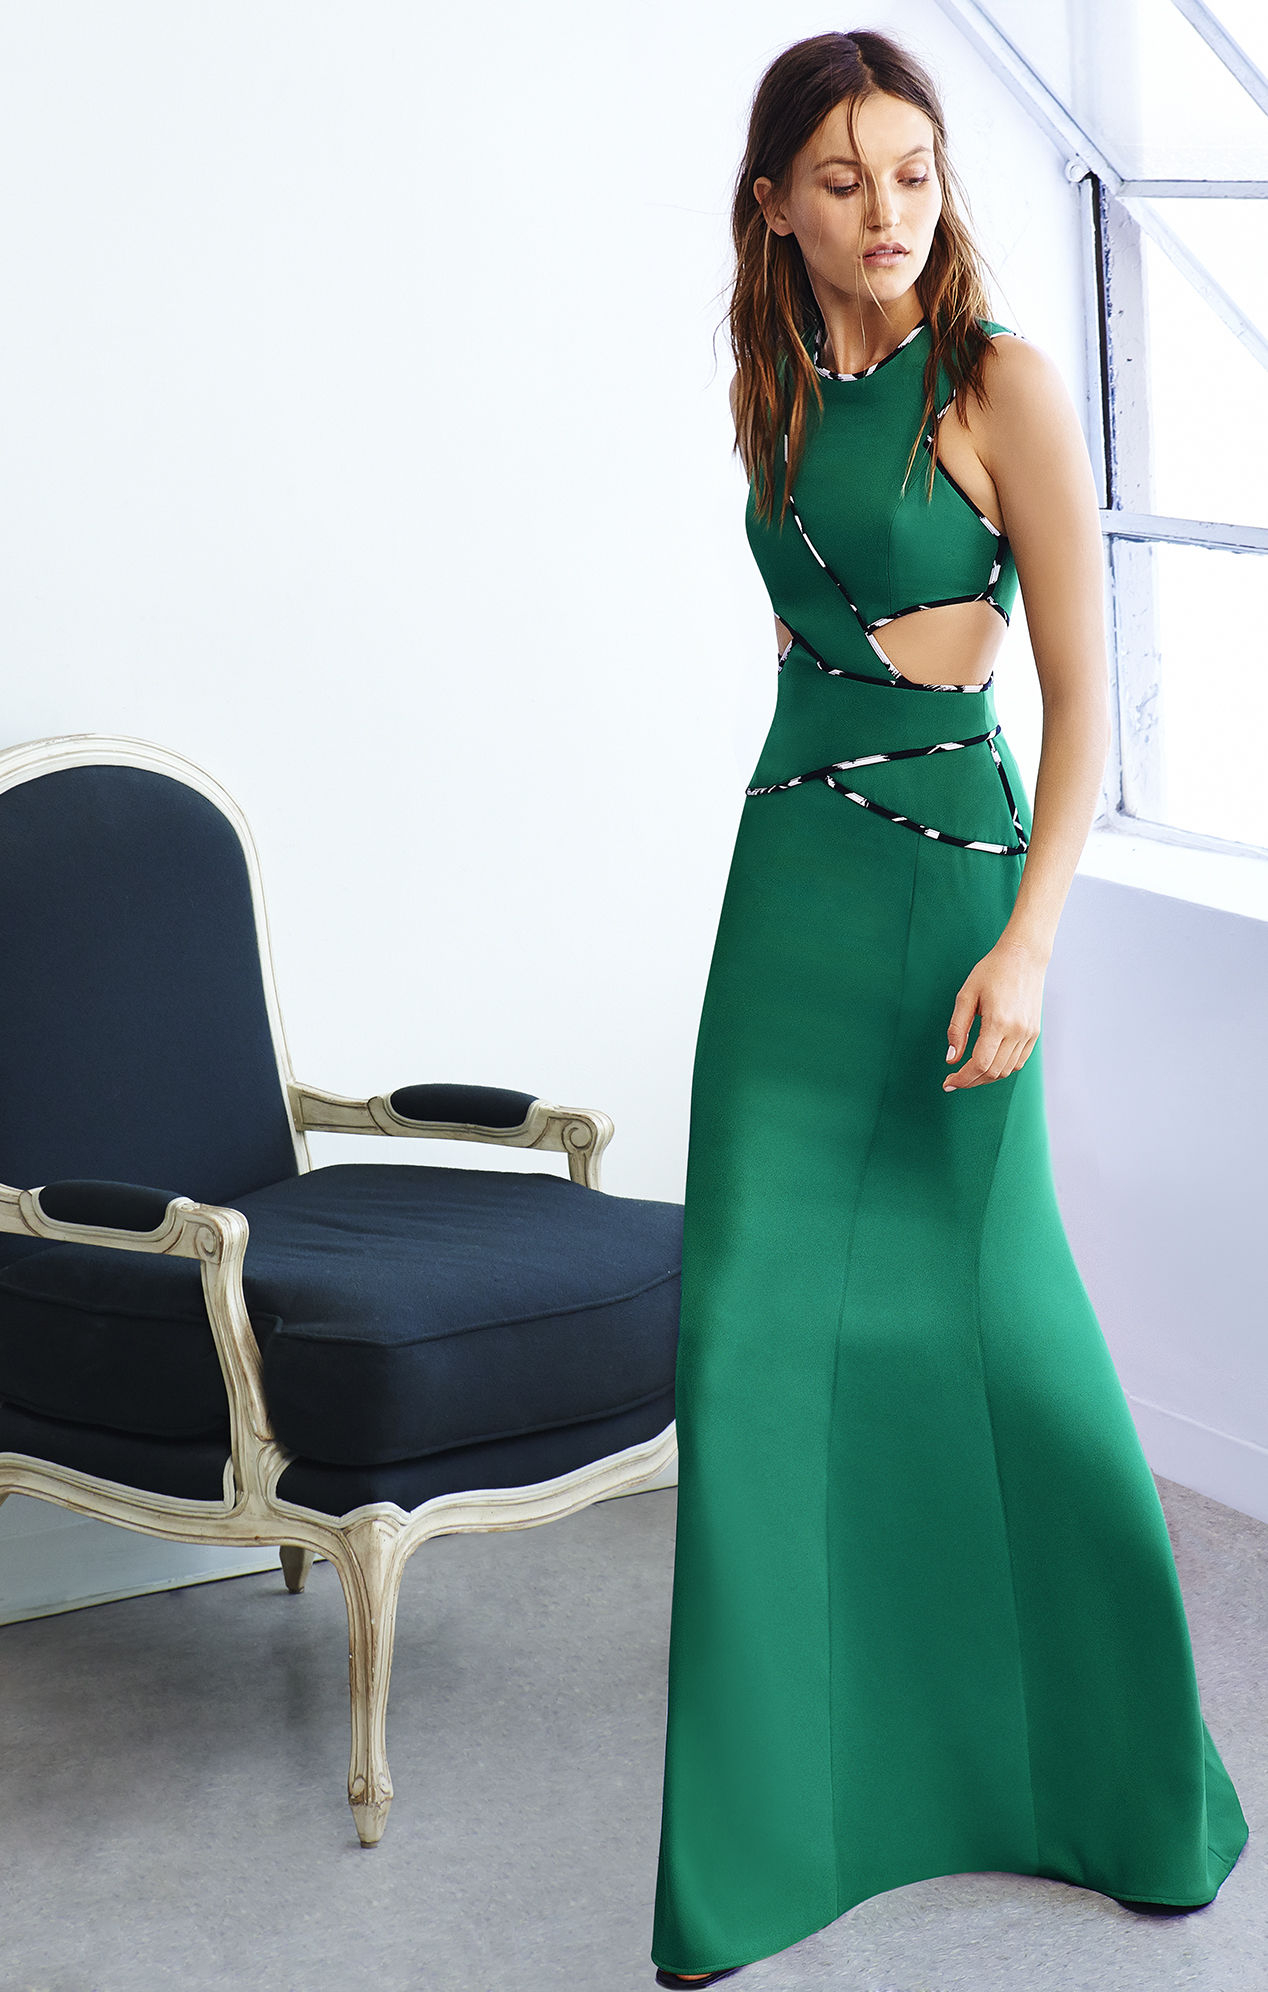 Lyst - Bcbgmaxazria Nikkole Sleeveless Side Cutout Gown in Green